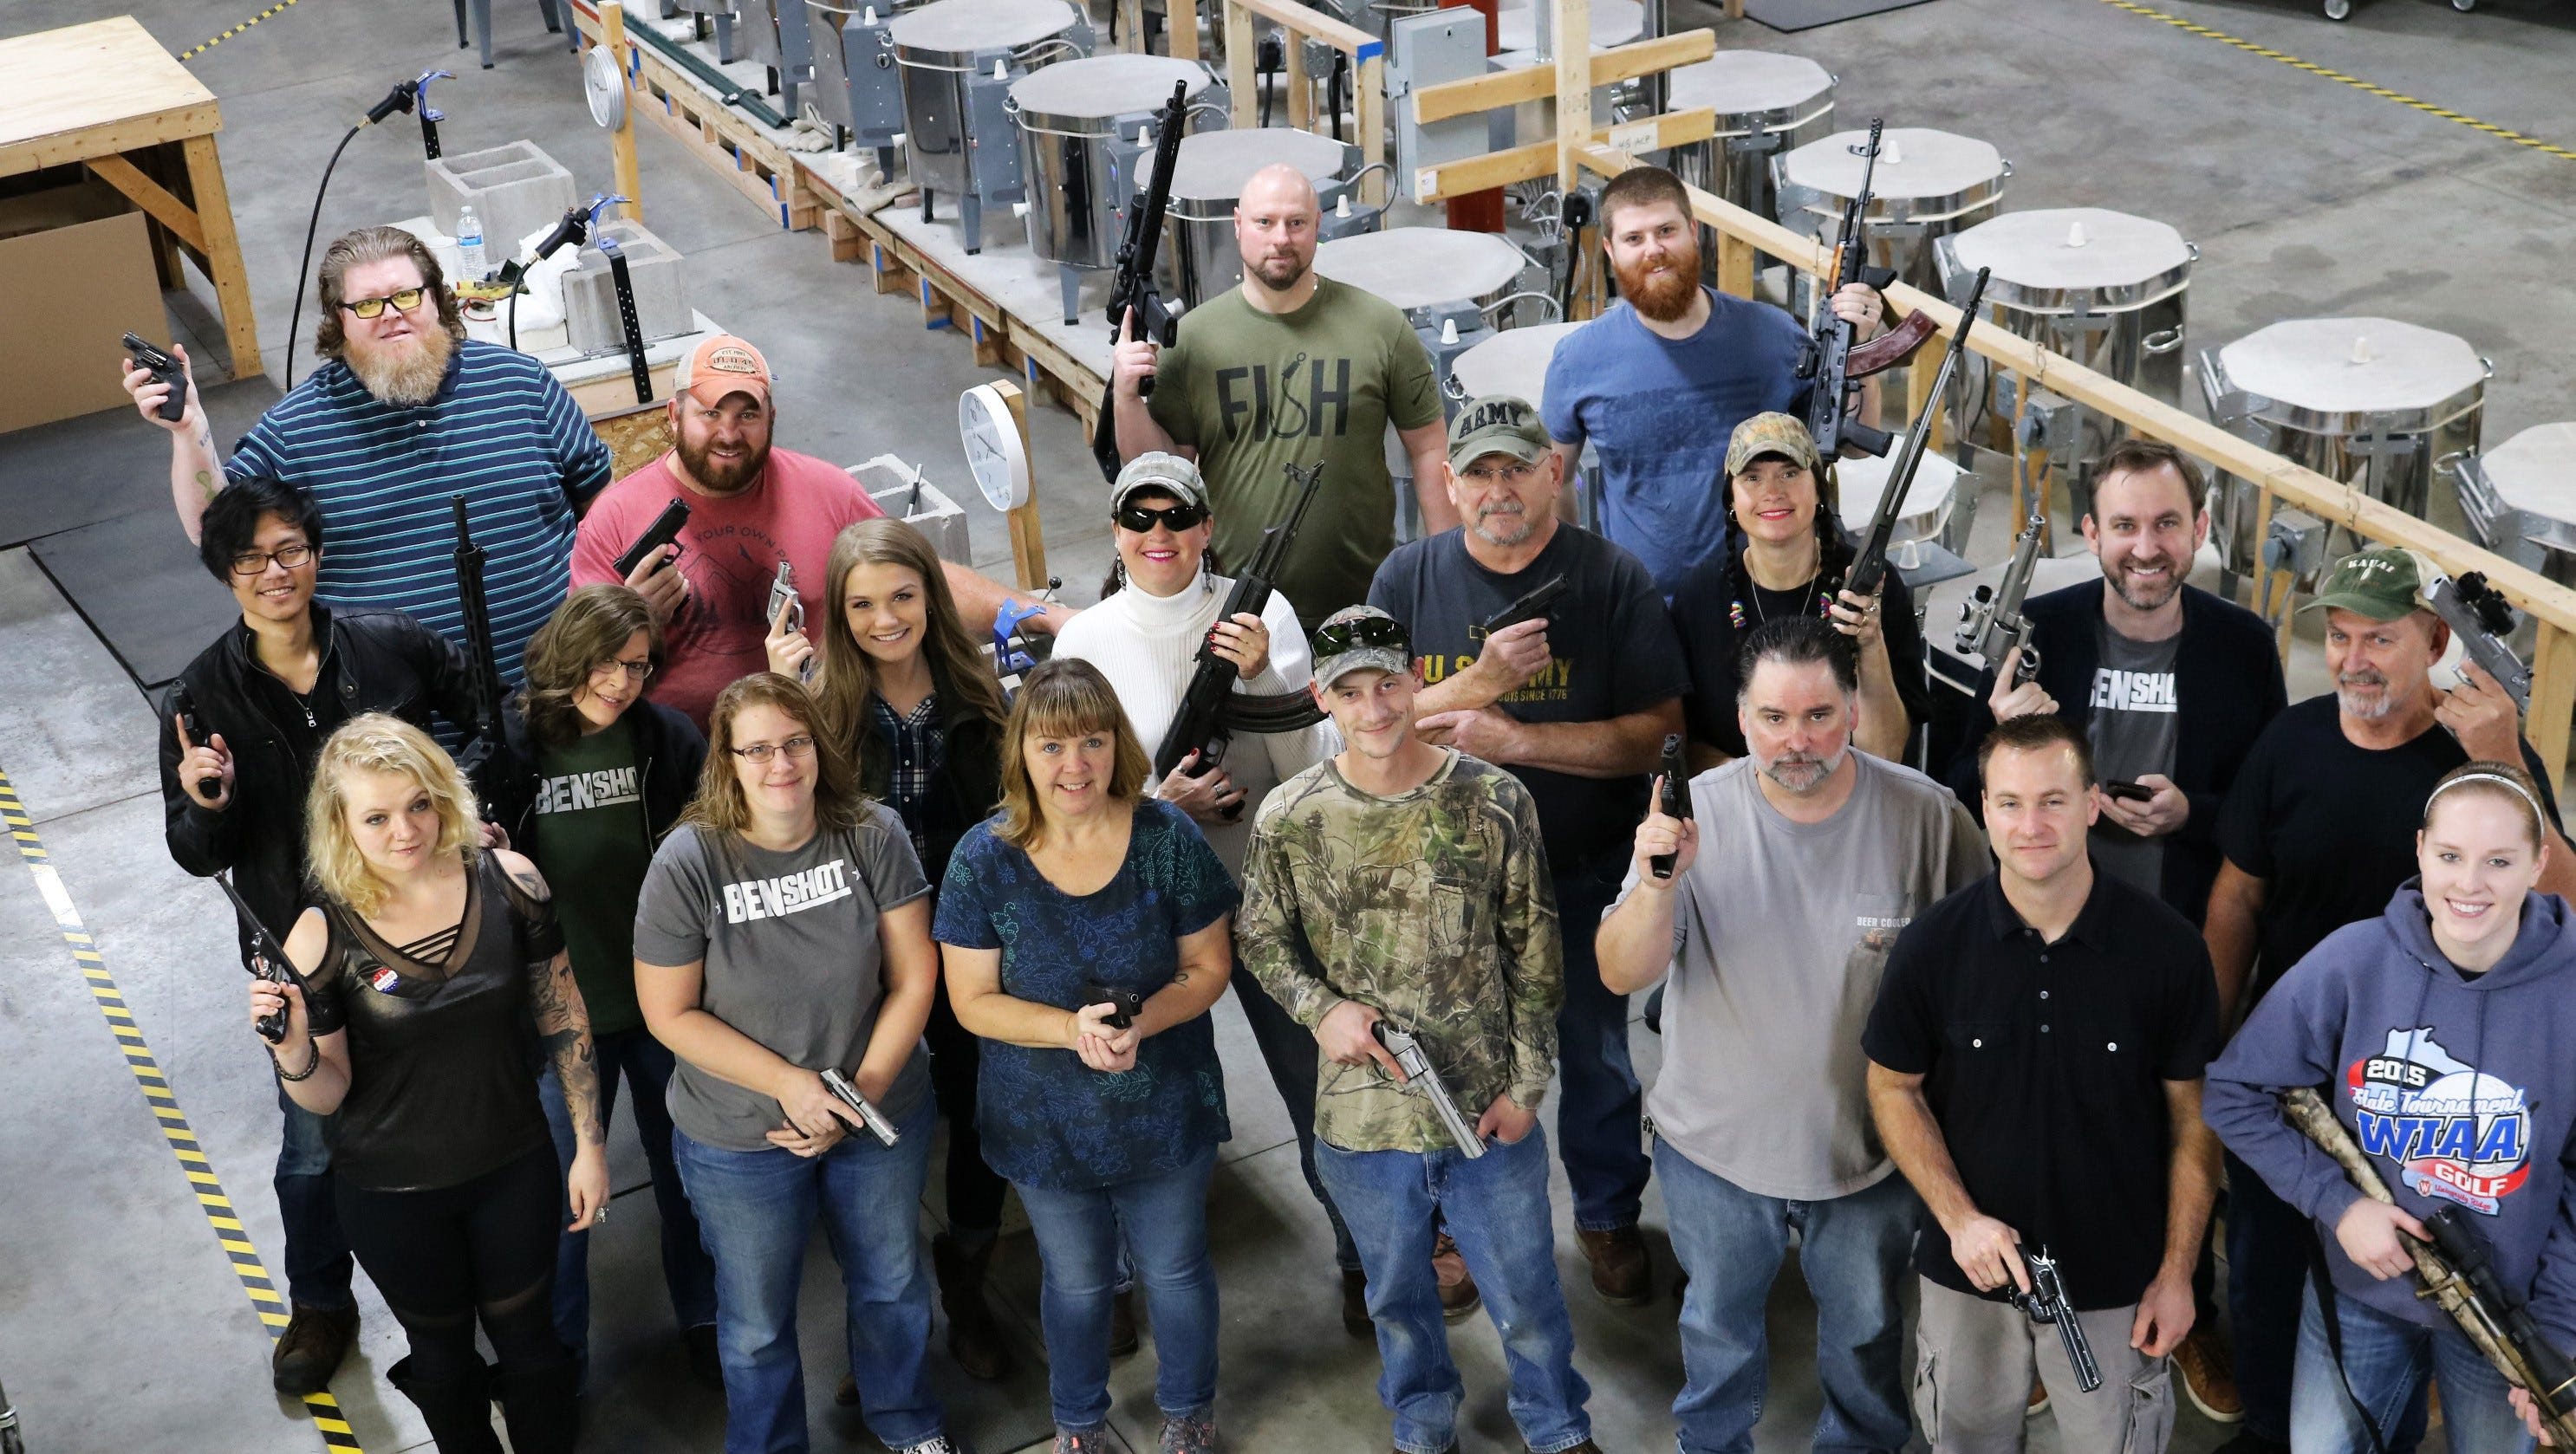 Employees at BenShot, a business that produces glassware embedded with bullets, show off their guns at their workshop in Hortonville. Each employee was given a handgun as a Christmas gift from the business.